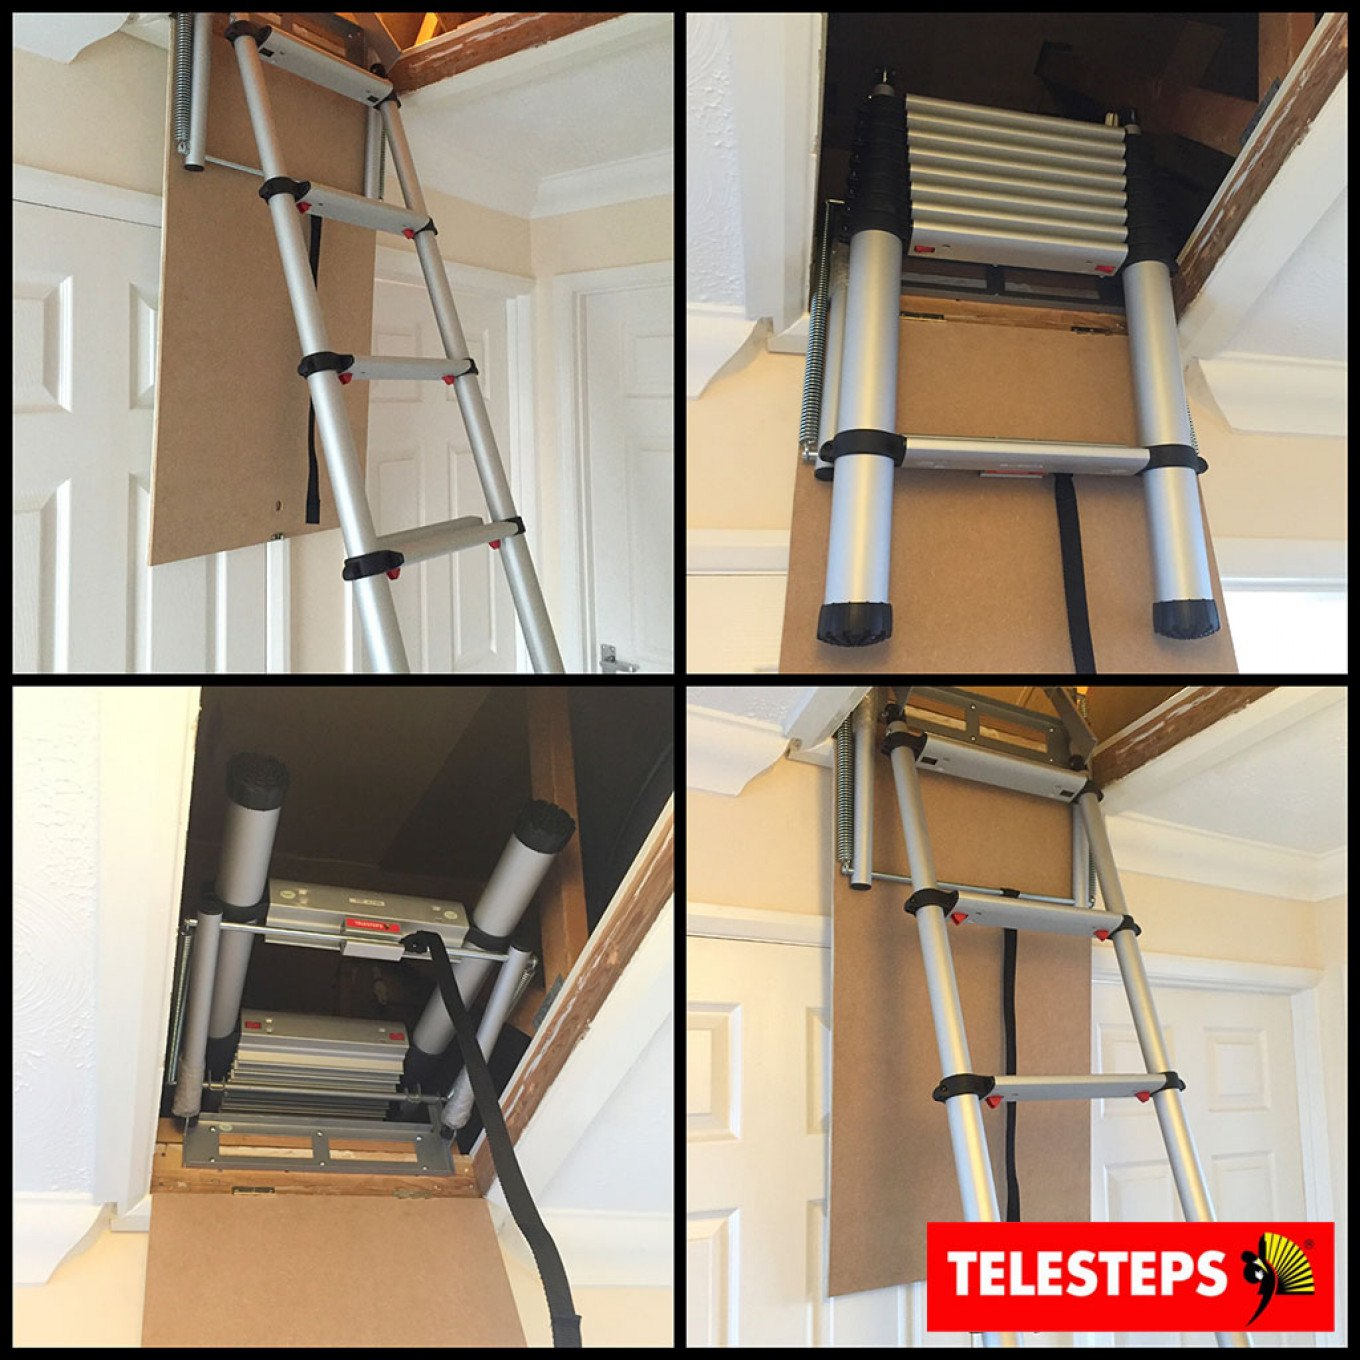 Chrisu0027 Telesteps 60324 Loft Ladder